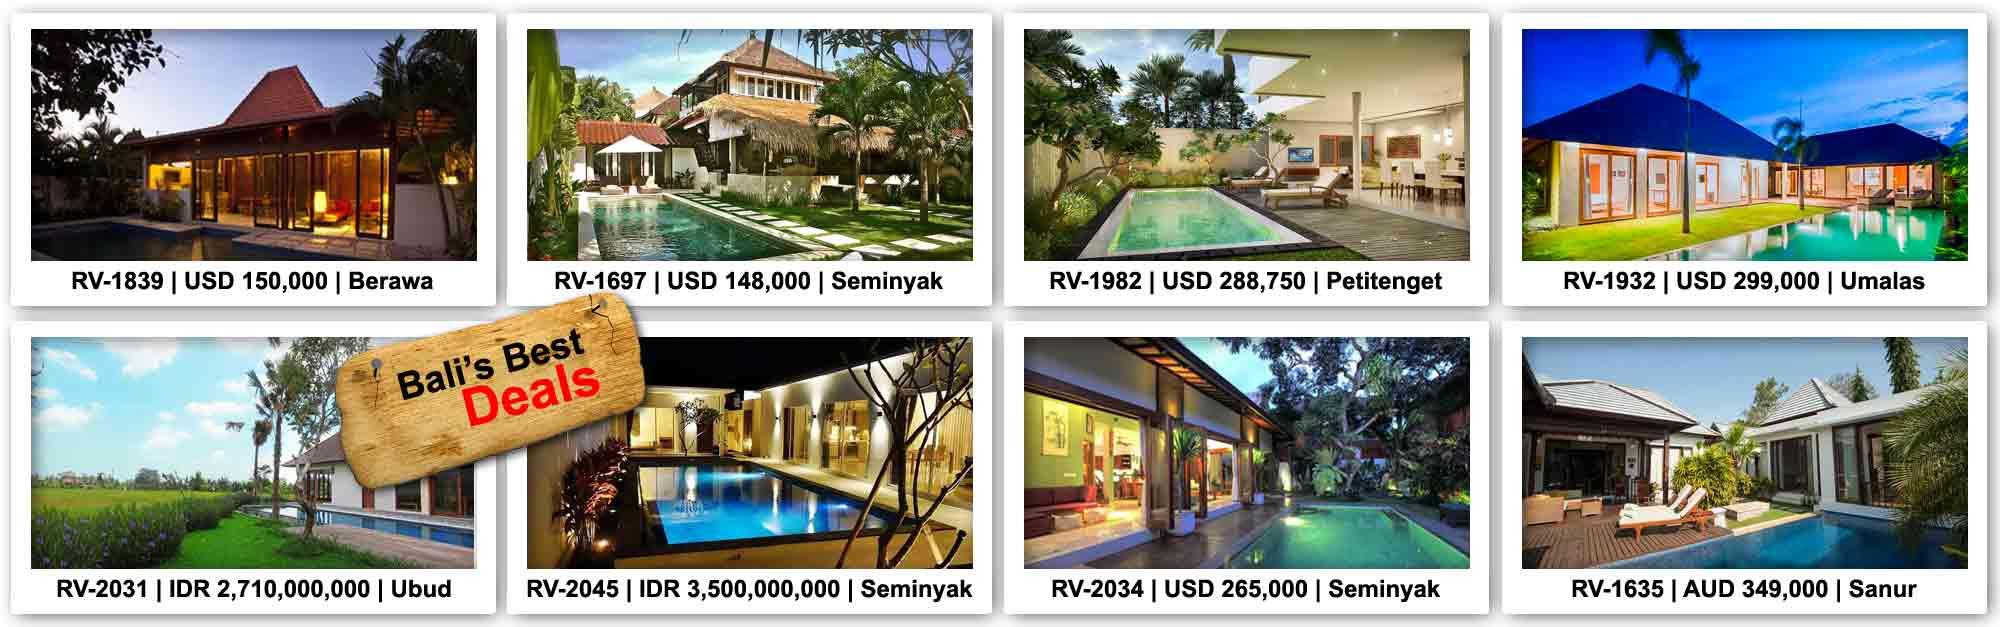 Listings Home For Sale In Bali